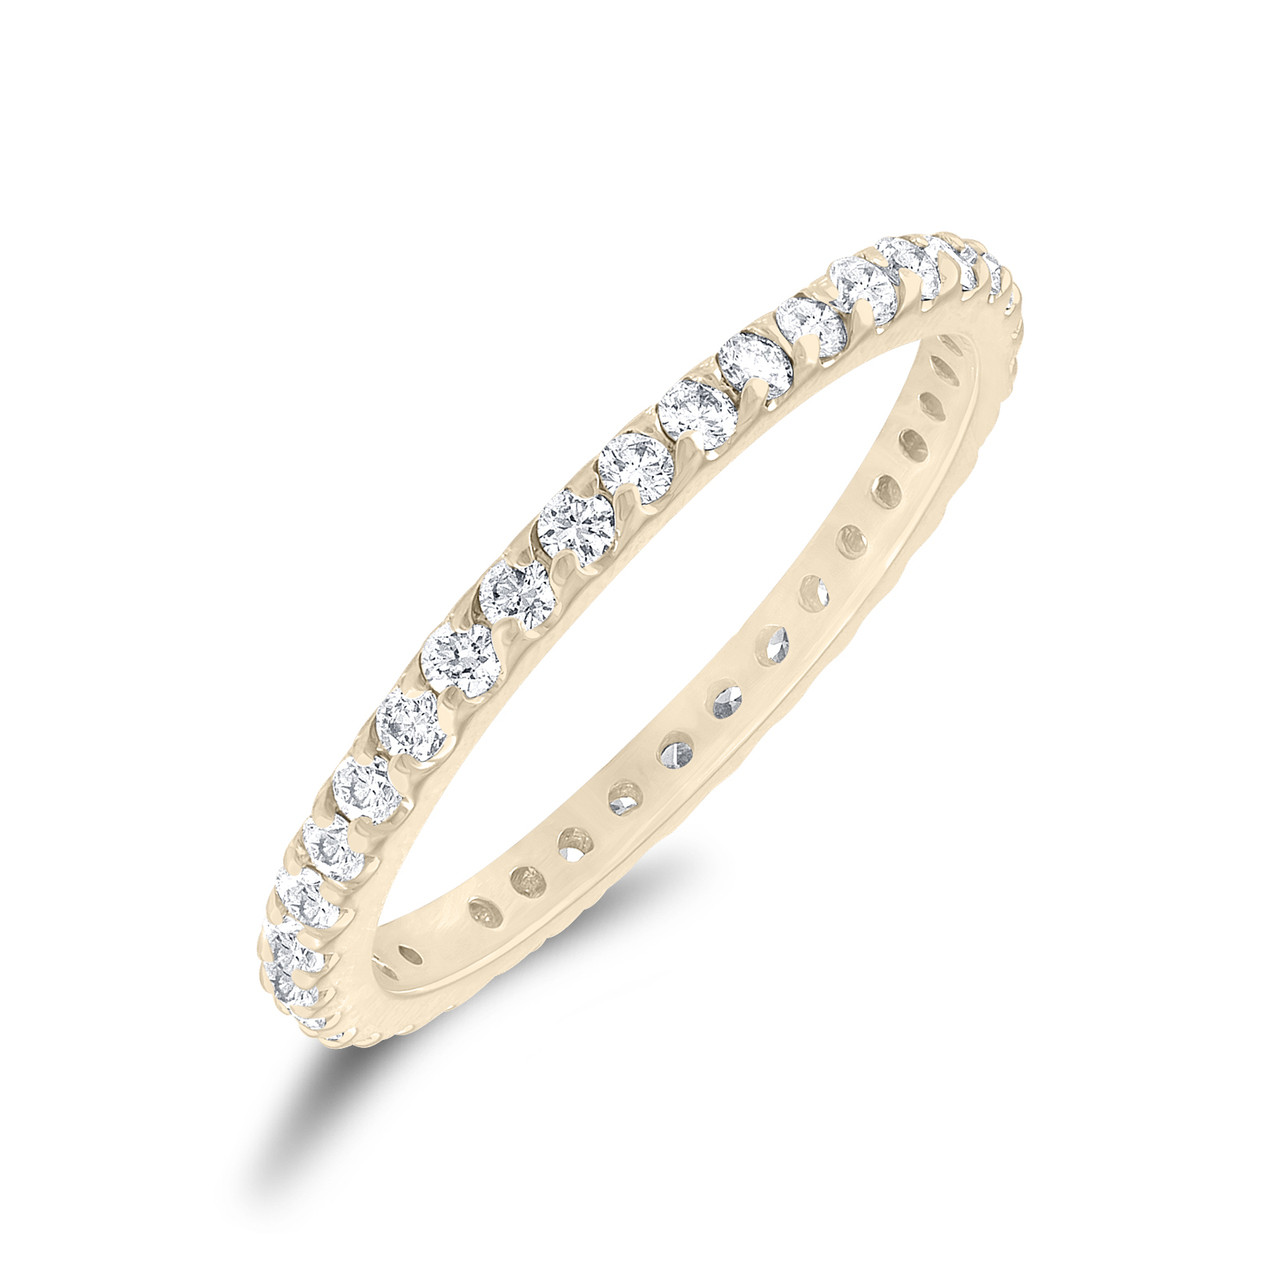 Stackable Wedding Bands.Yellow Gold Diamond Eternity Ring Stackable Wedding Band Womens Anniversary Ring 0 56 Carat Pave Handmade